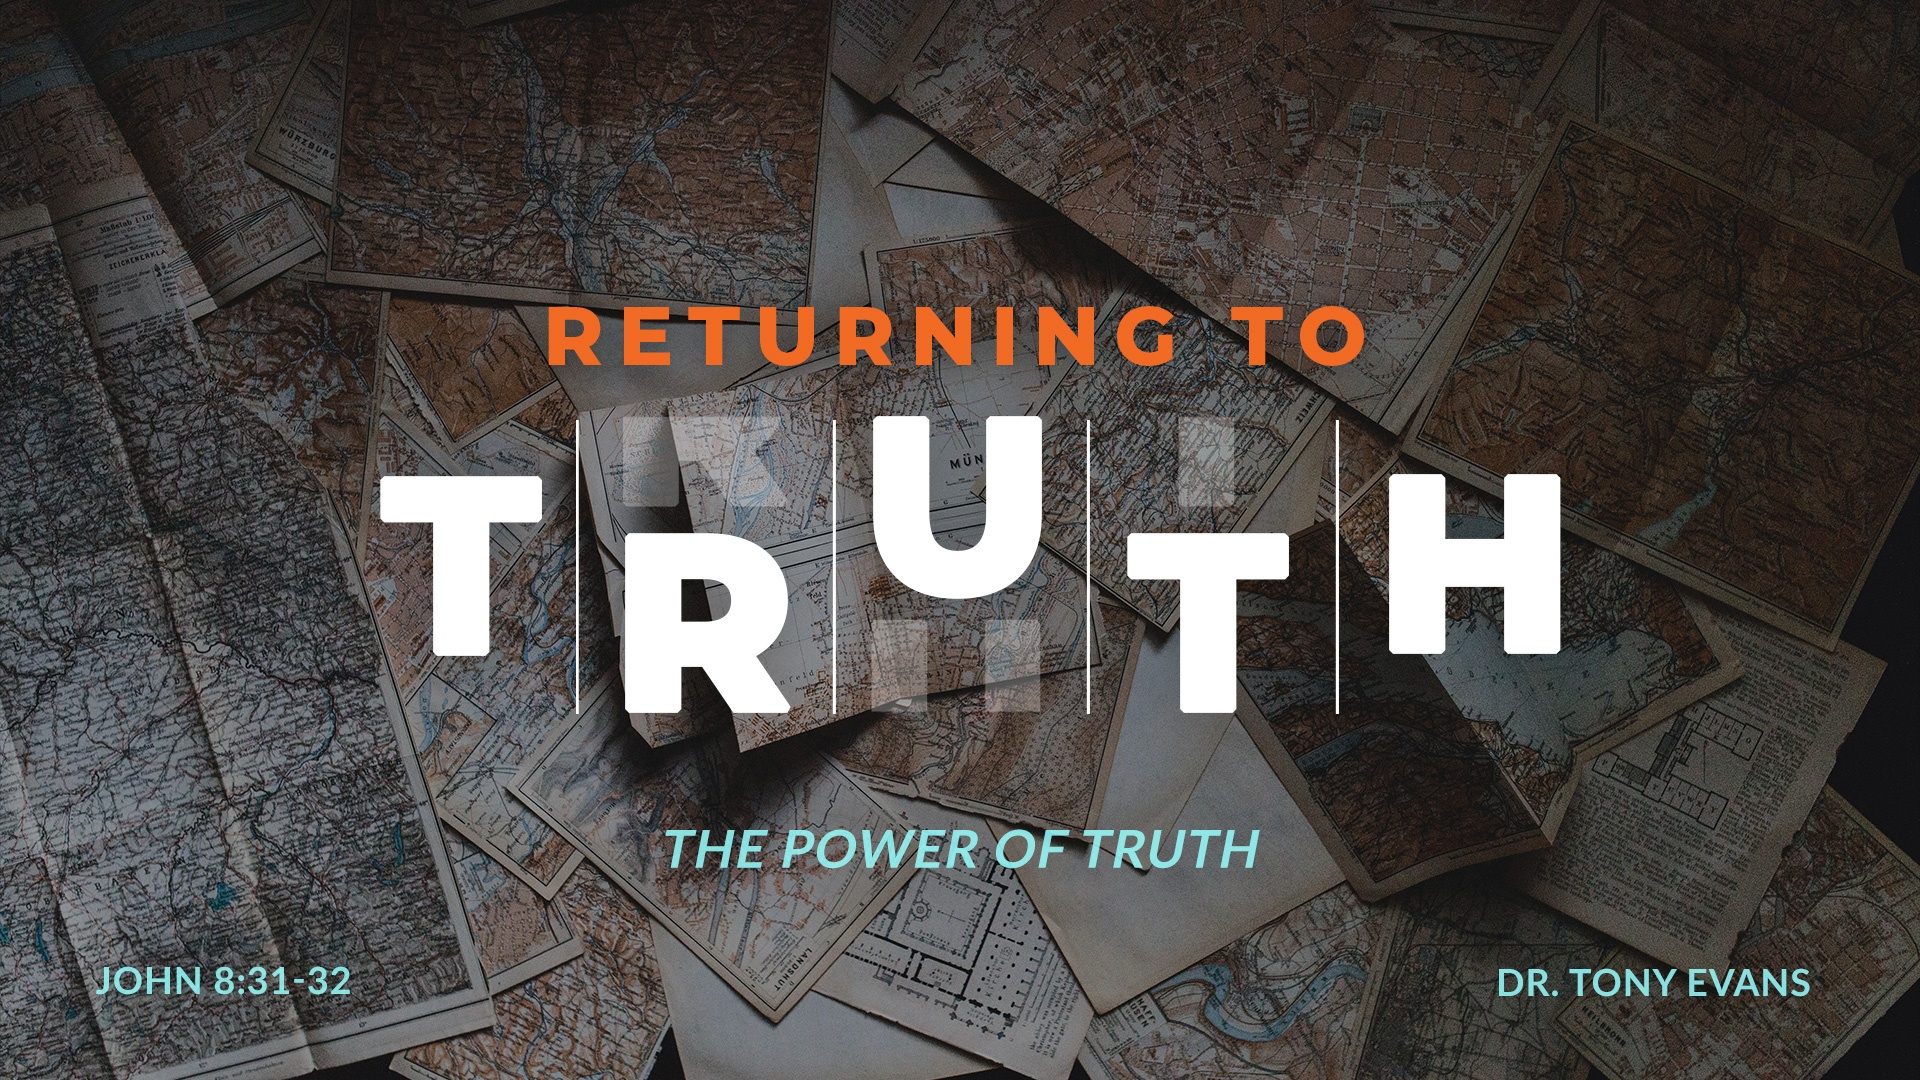 Returning to Truth: The Power of Truth by Dr. Tony Evans